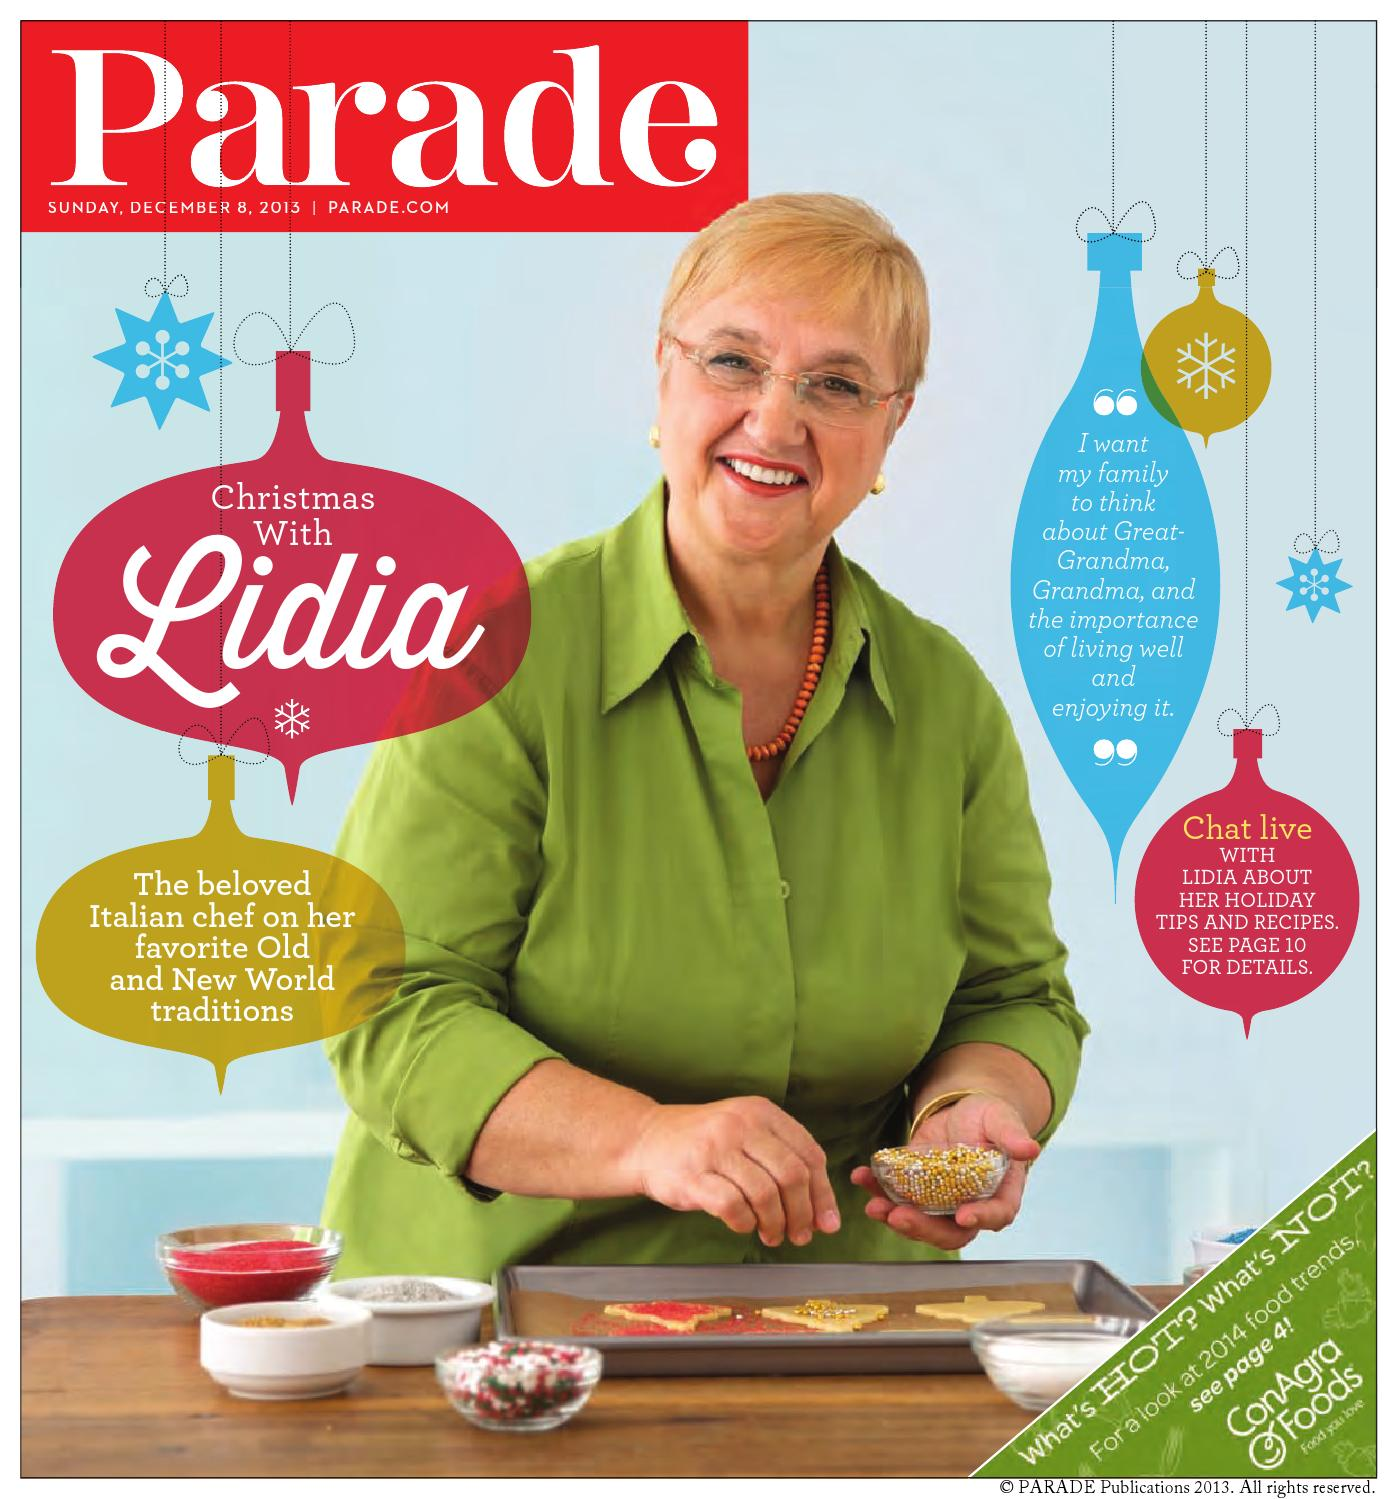 Parade12 06 By The Southern Illinoisan Issuu